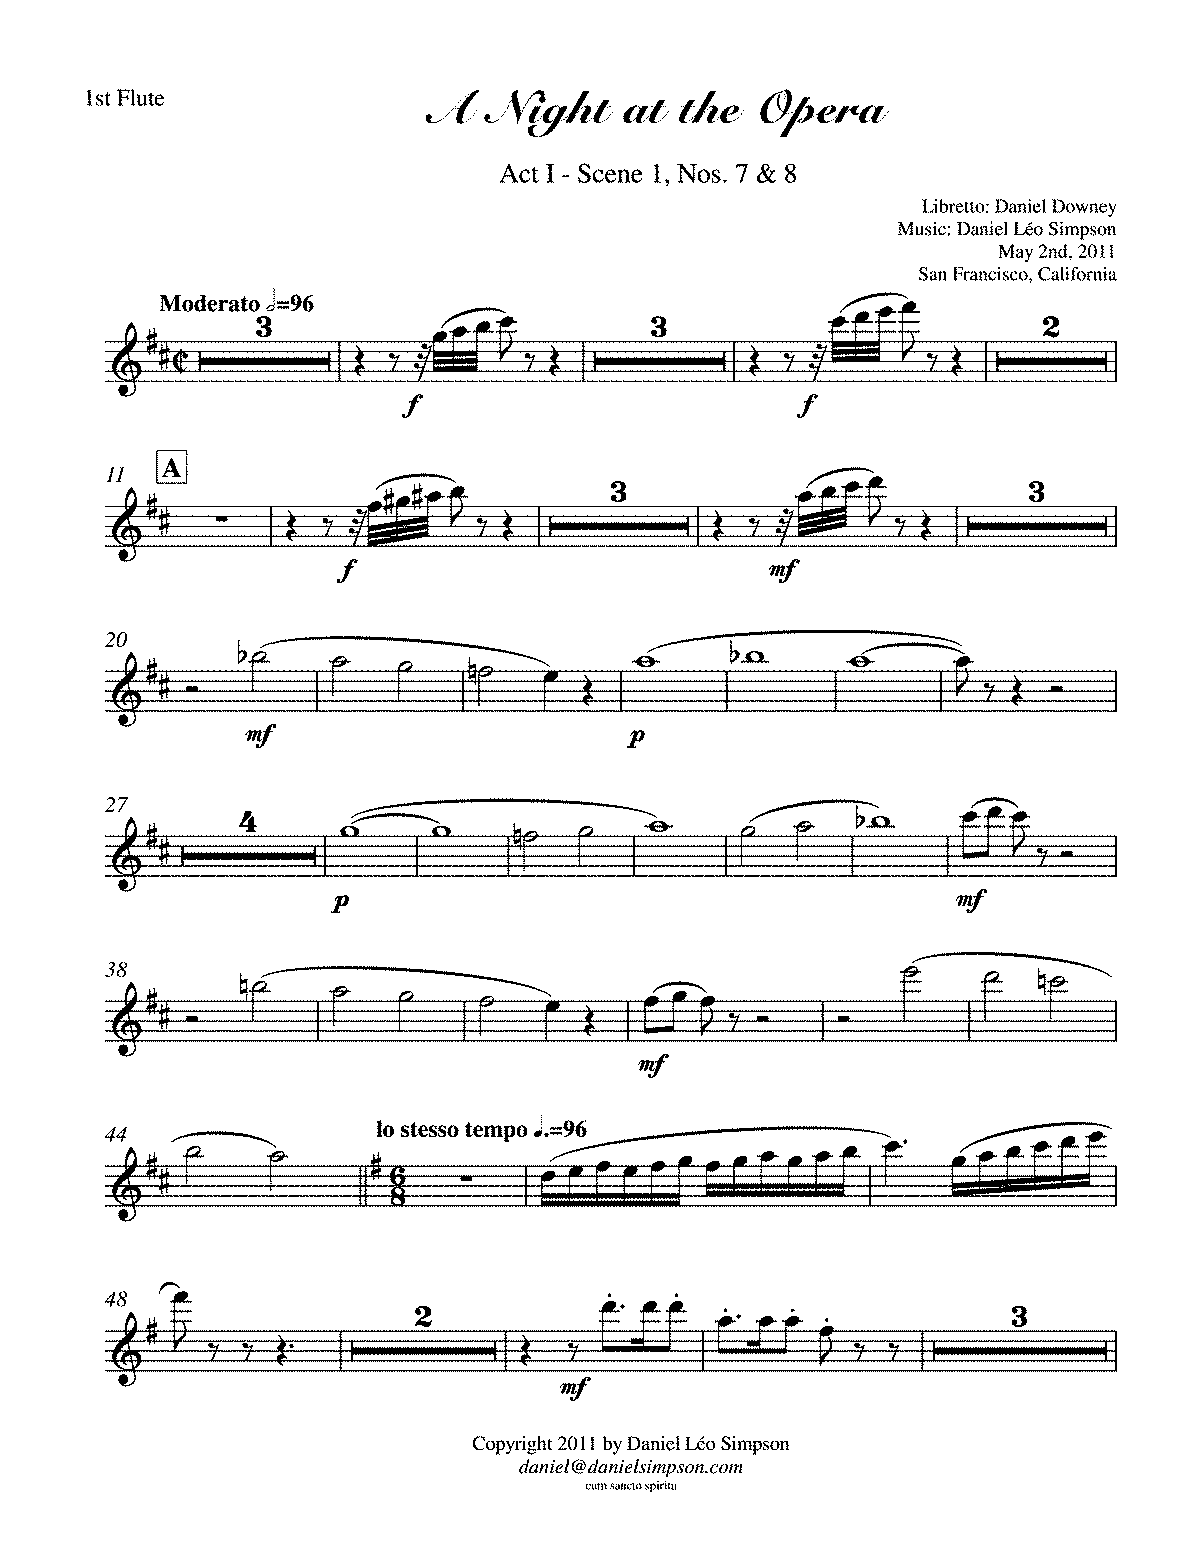 PMLP506399-FLUTES-A1S1-01-a-night-at-the-opera-simpson-downey-imslp-011514.pdf